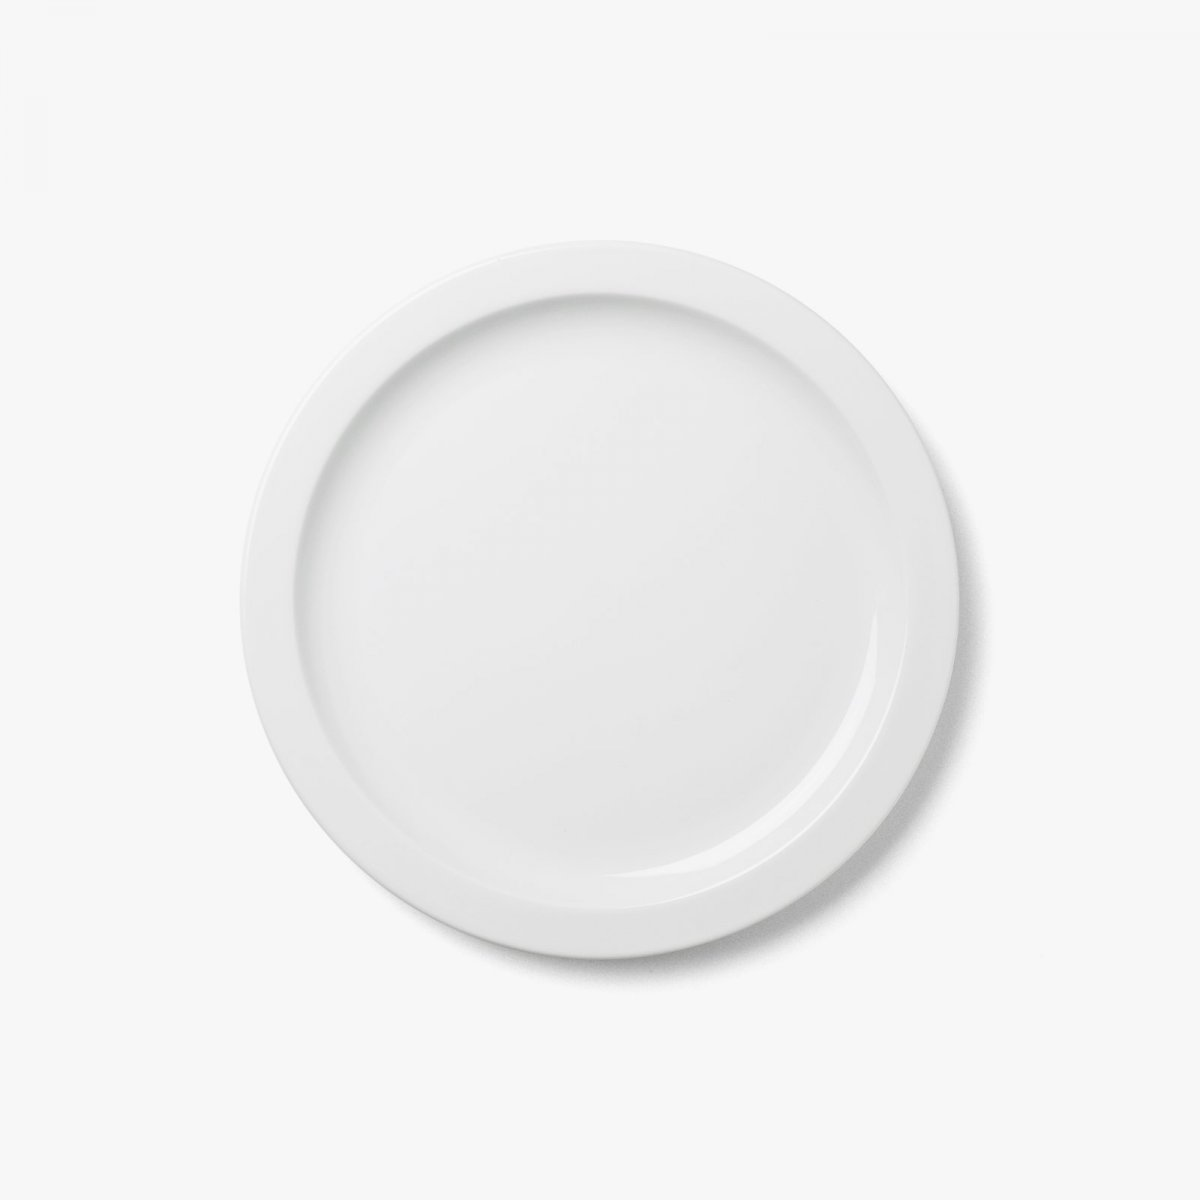 New Norm Dinnerware Plate/Dish, white.